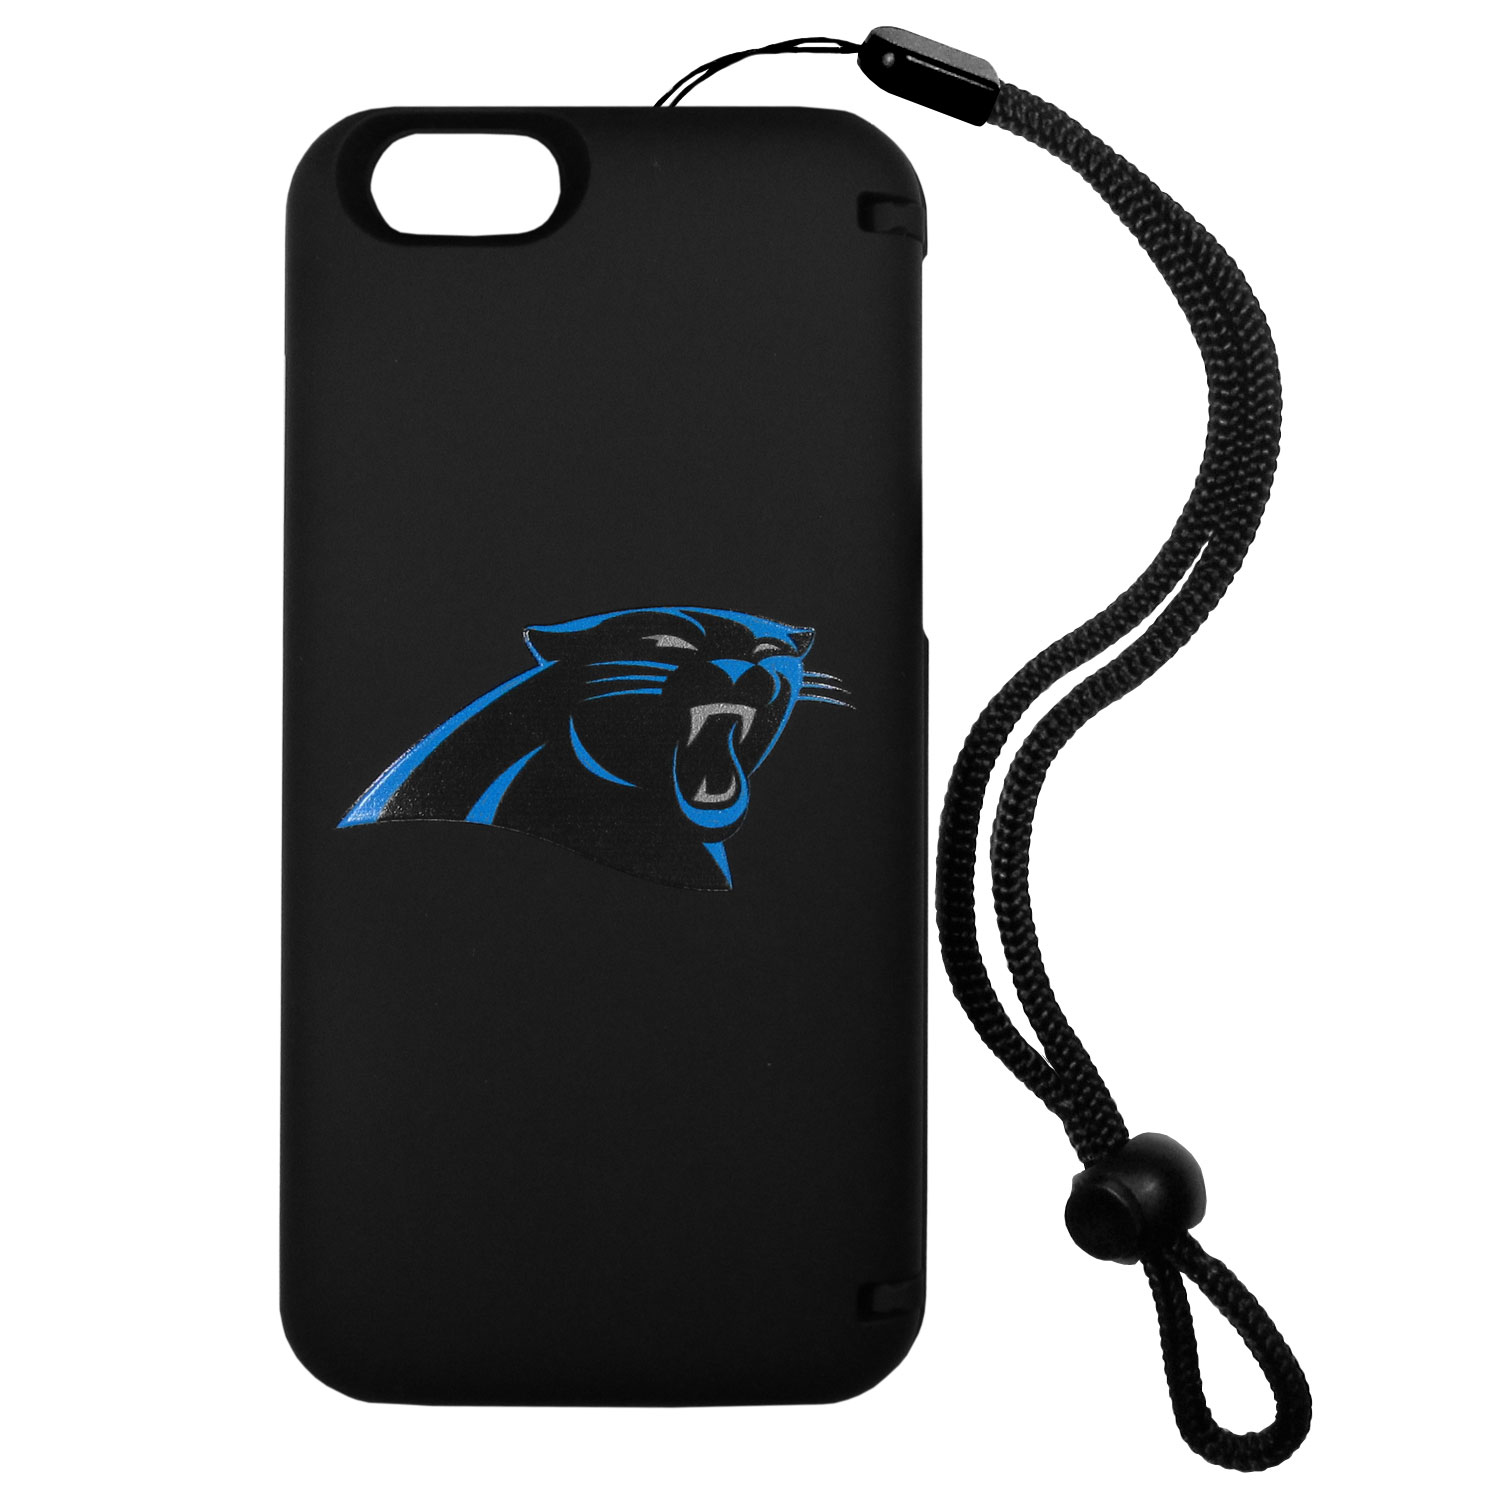 Carolina Panthers iPhone 6 Plus Everything Case - This case really does have everything but the kitchen sink! The hidden compartment lets you keep your cards, money and tickets to the big game safe and secure and has a compact mirror so you can make sure your game face is ready to go. It also comes with a kickstand to make chatting and watching videos a breeze. The wrist strap allows you to travel with ease with your everything case. If that's not enough, it also comes with the Carolina Panthers logo printed in expert detail on the front.